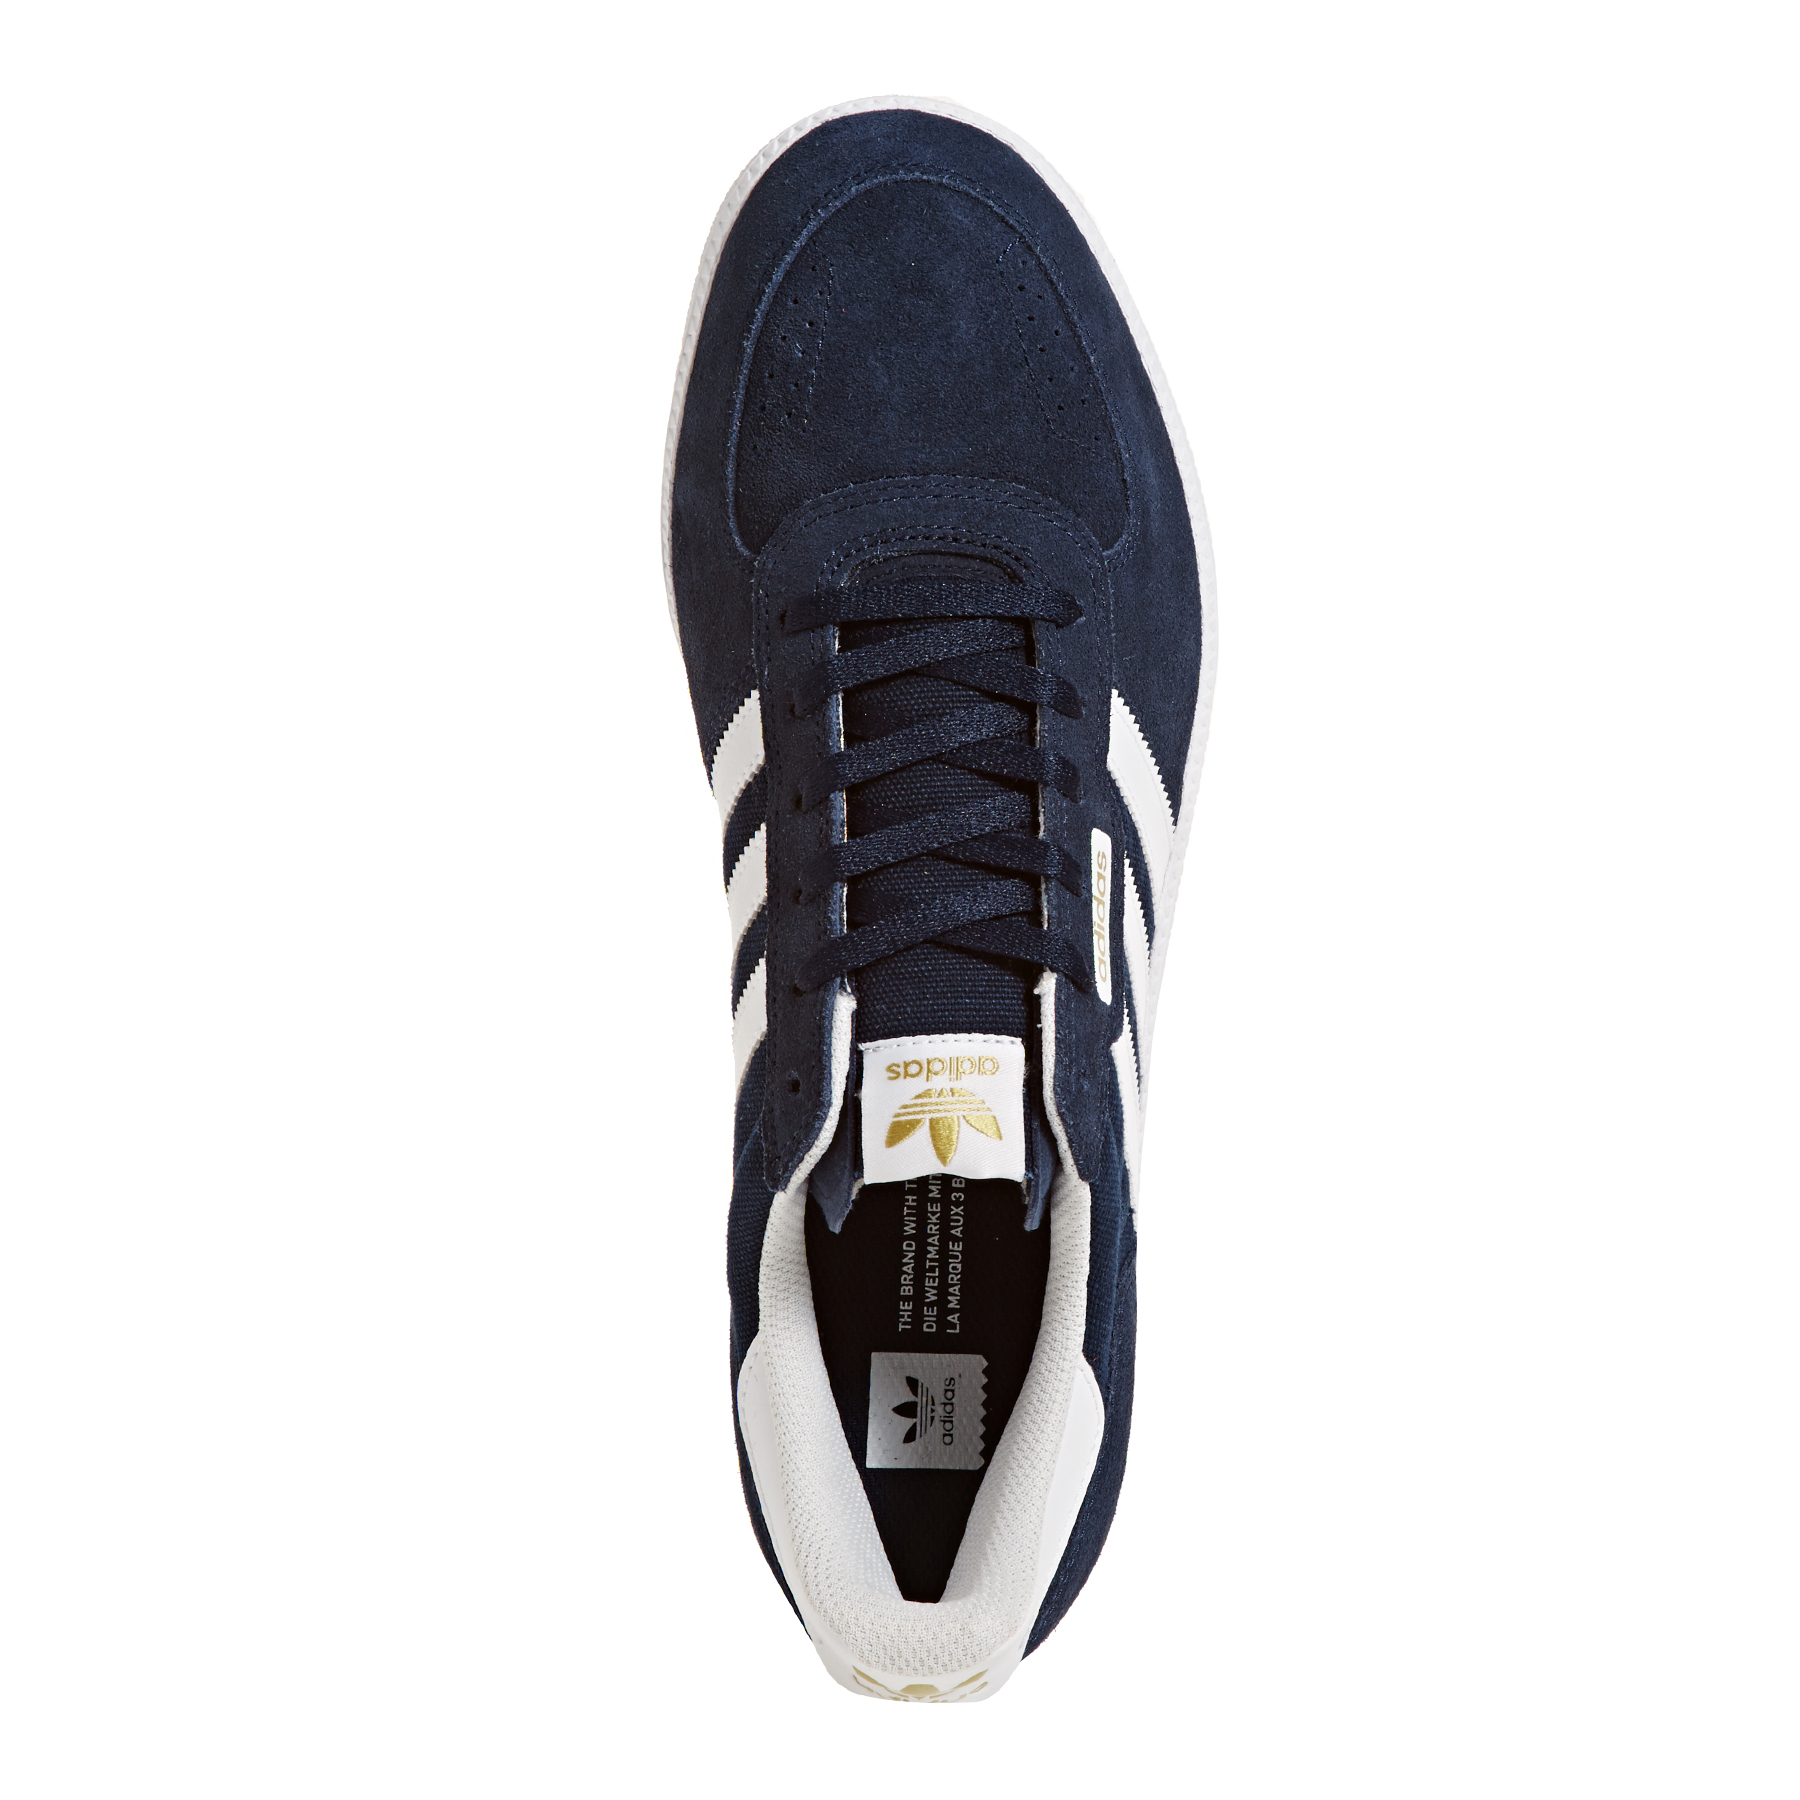 Adidas Leonero Shoes | Free Delivery Options